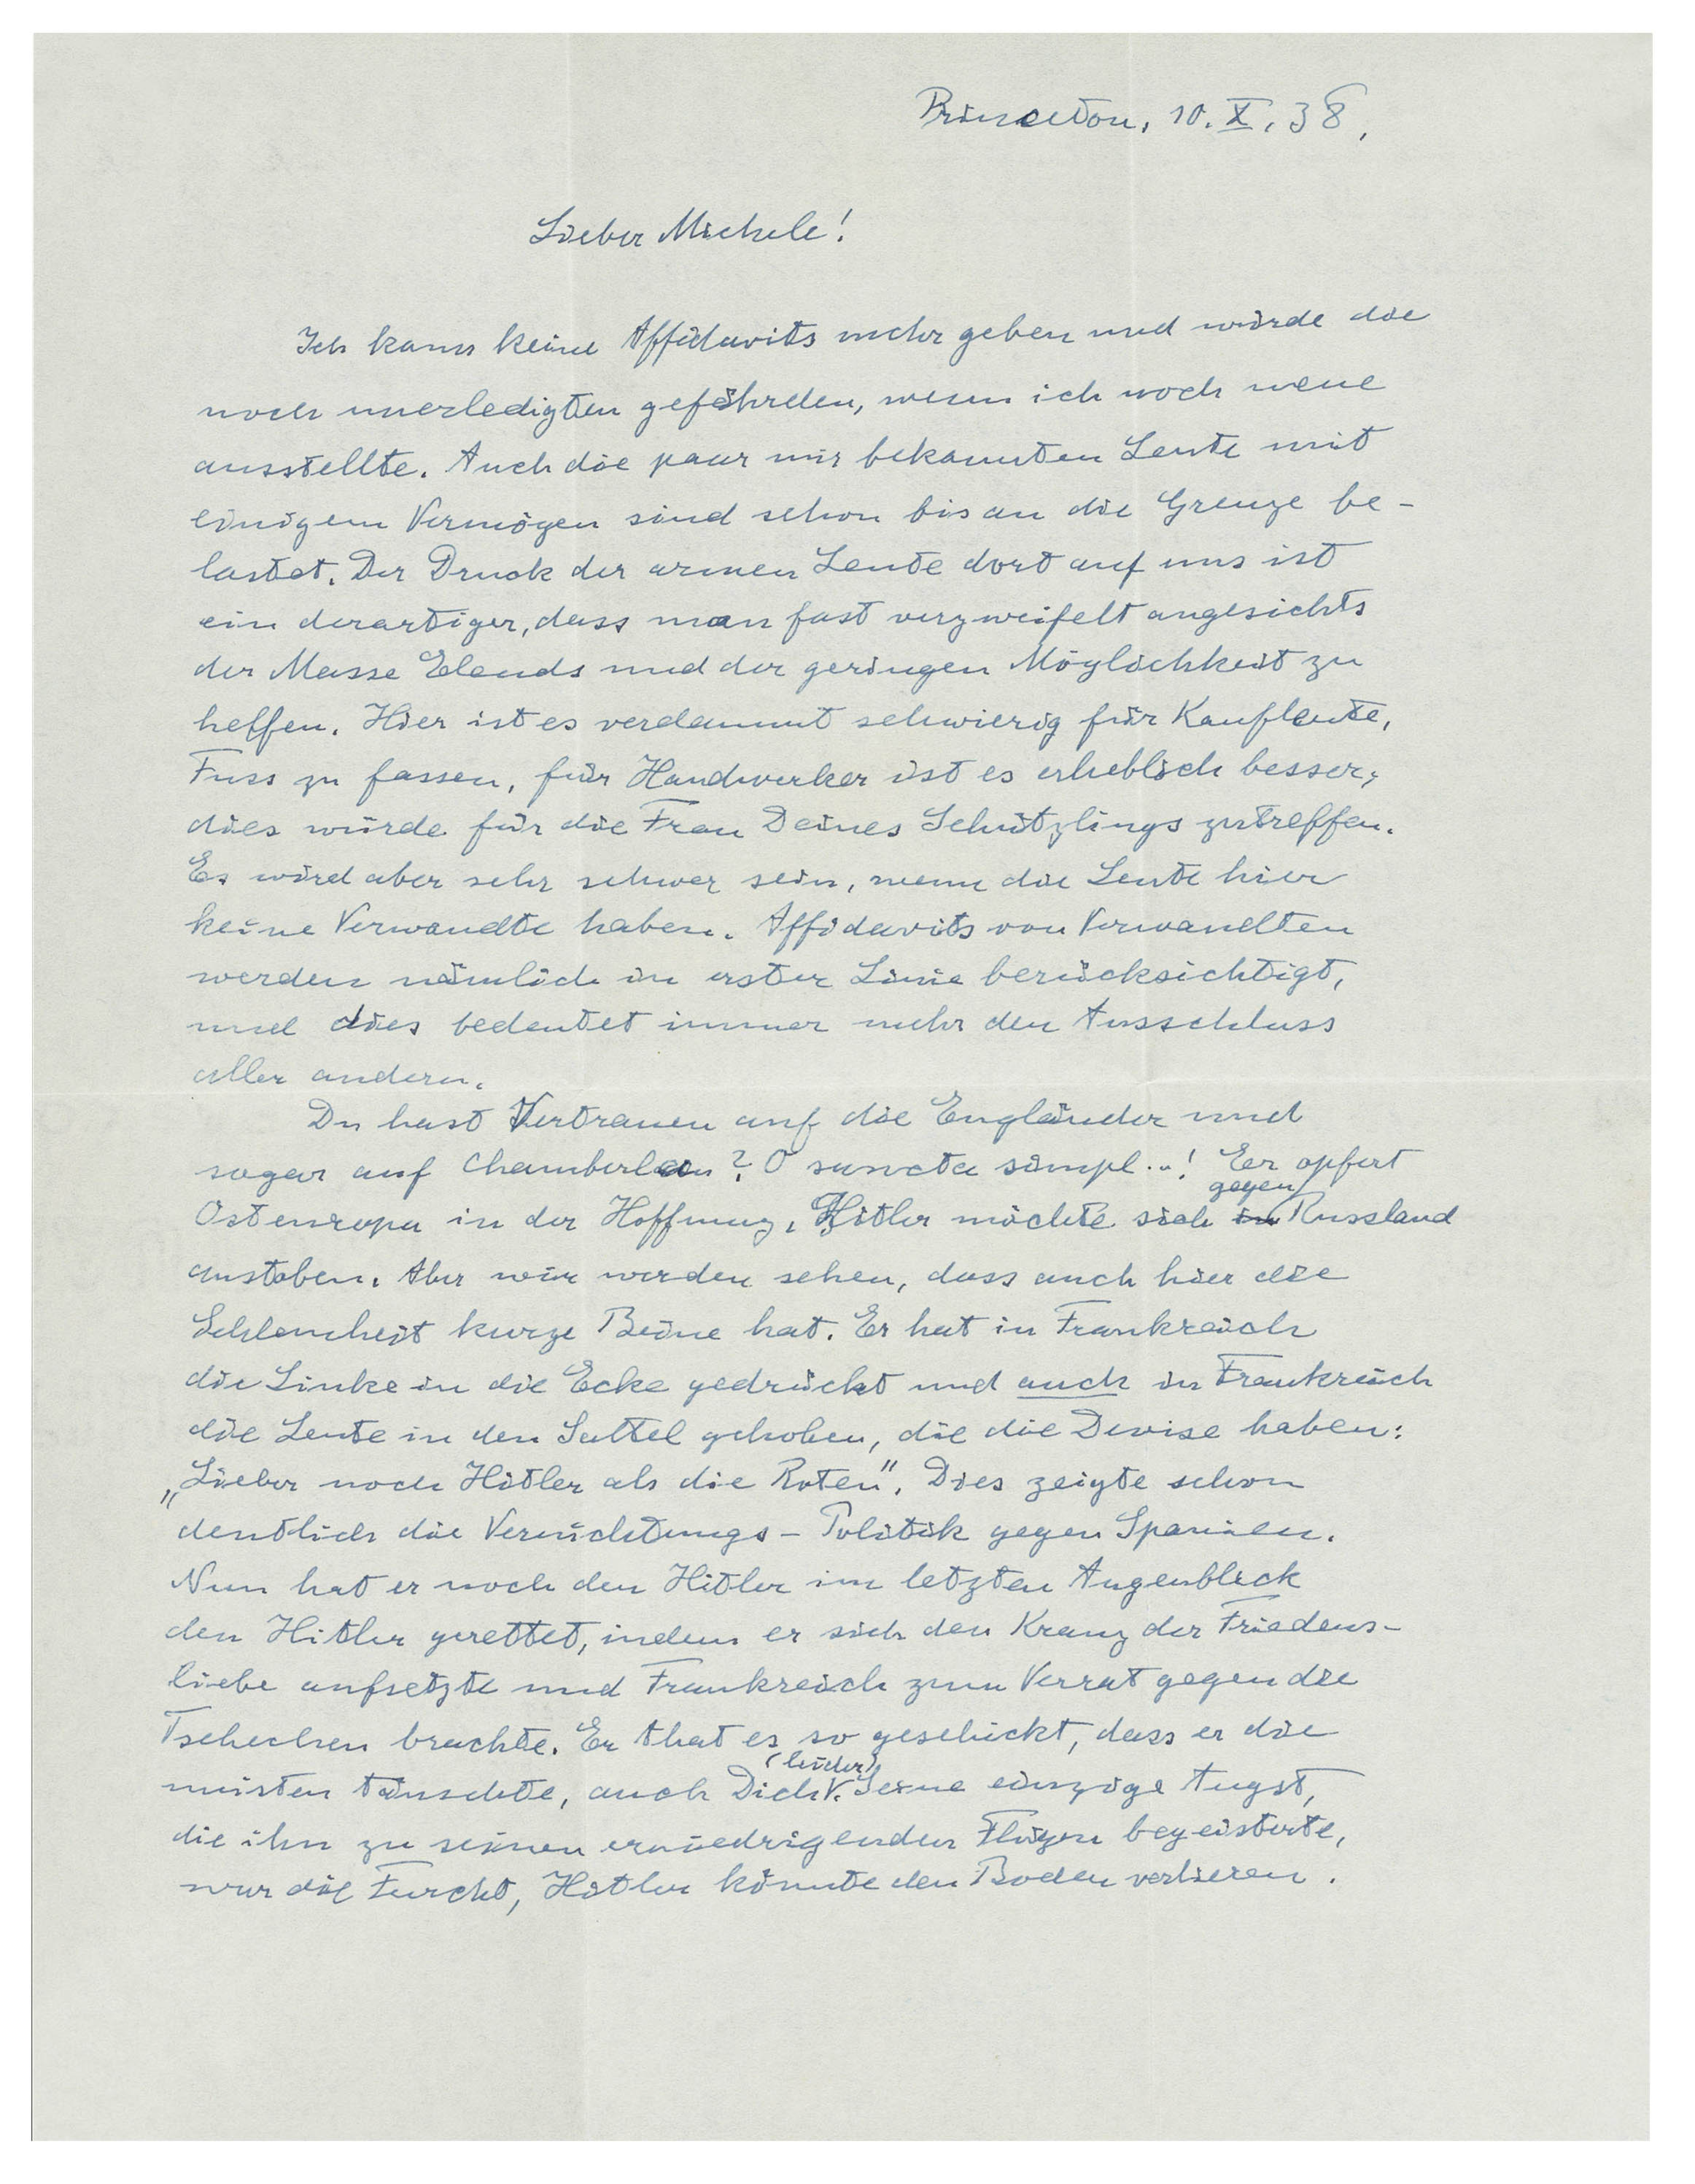 Albert Einstein Autograph Letters Sold at Nate D Sanders Auctions